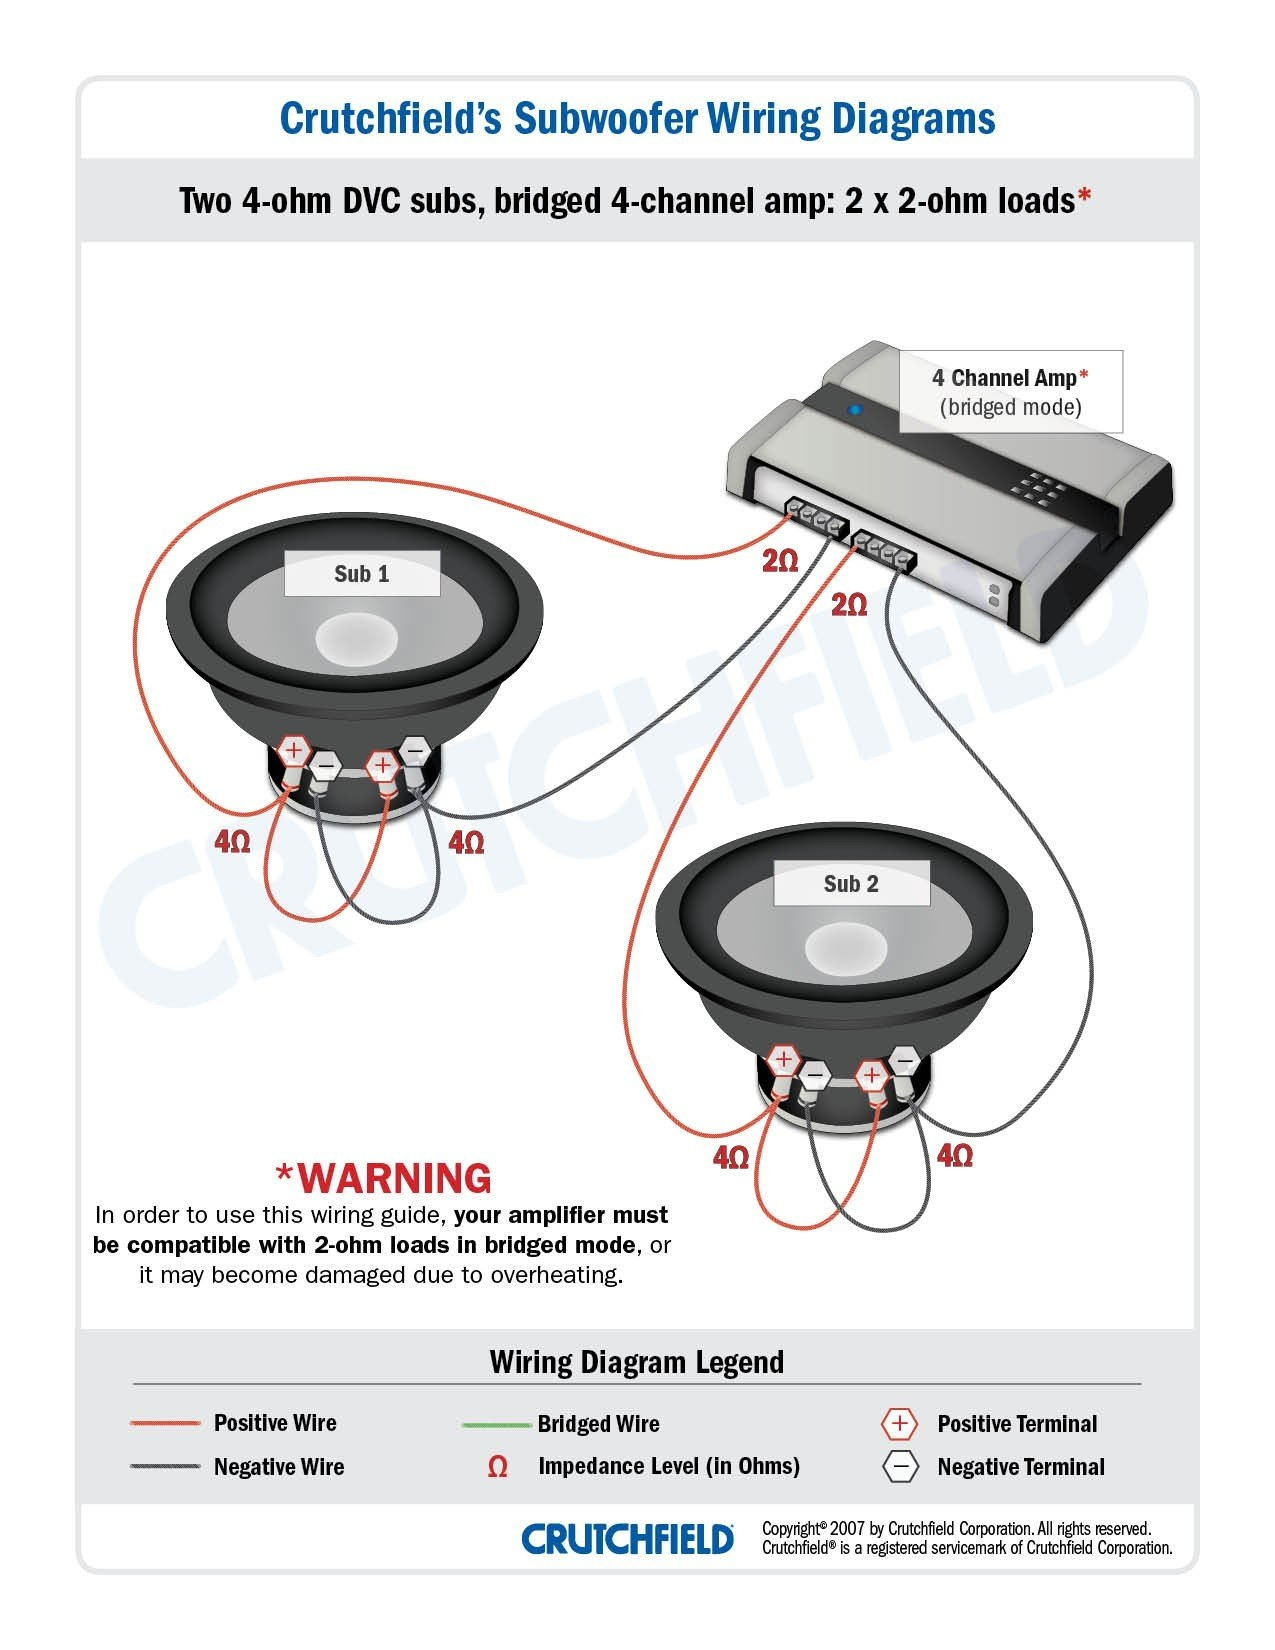 Jl Audio 500 1V2 Wiring Diagram | Wiring Diagram - Jl Audio 500 1 Wiring Diagram